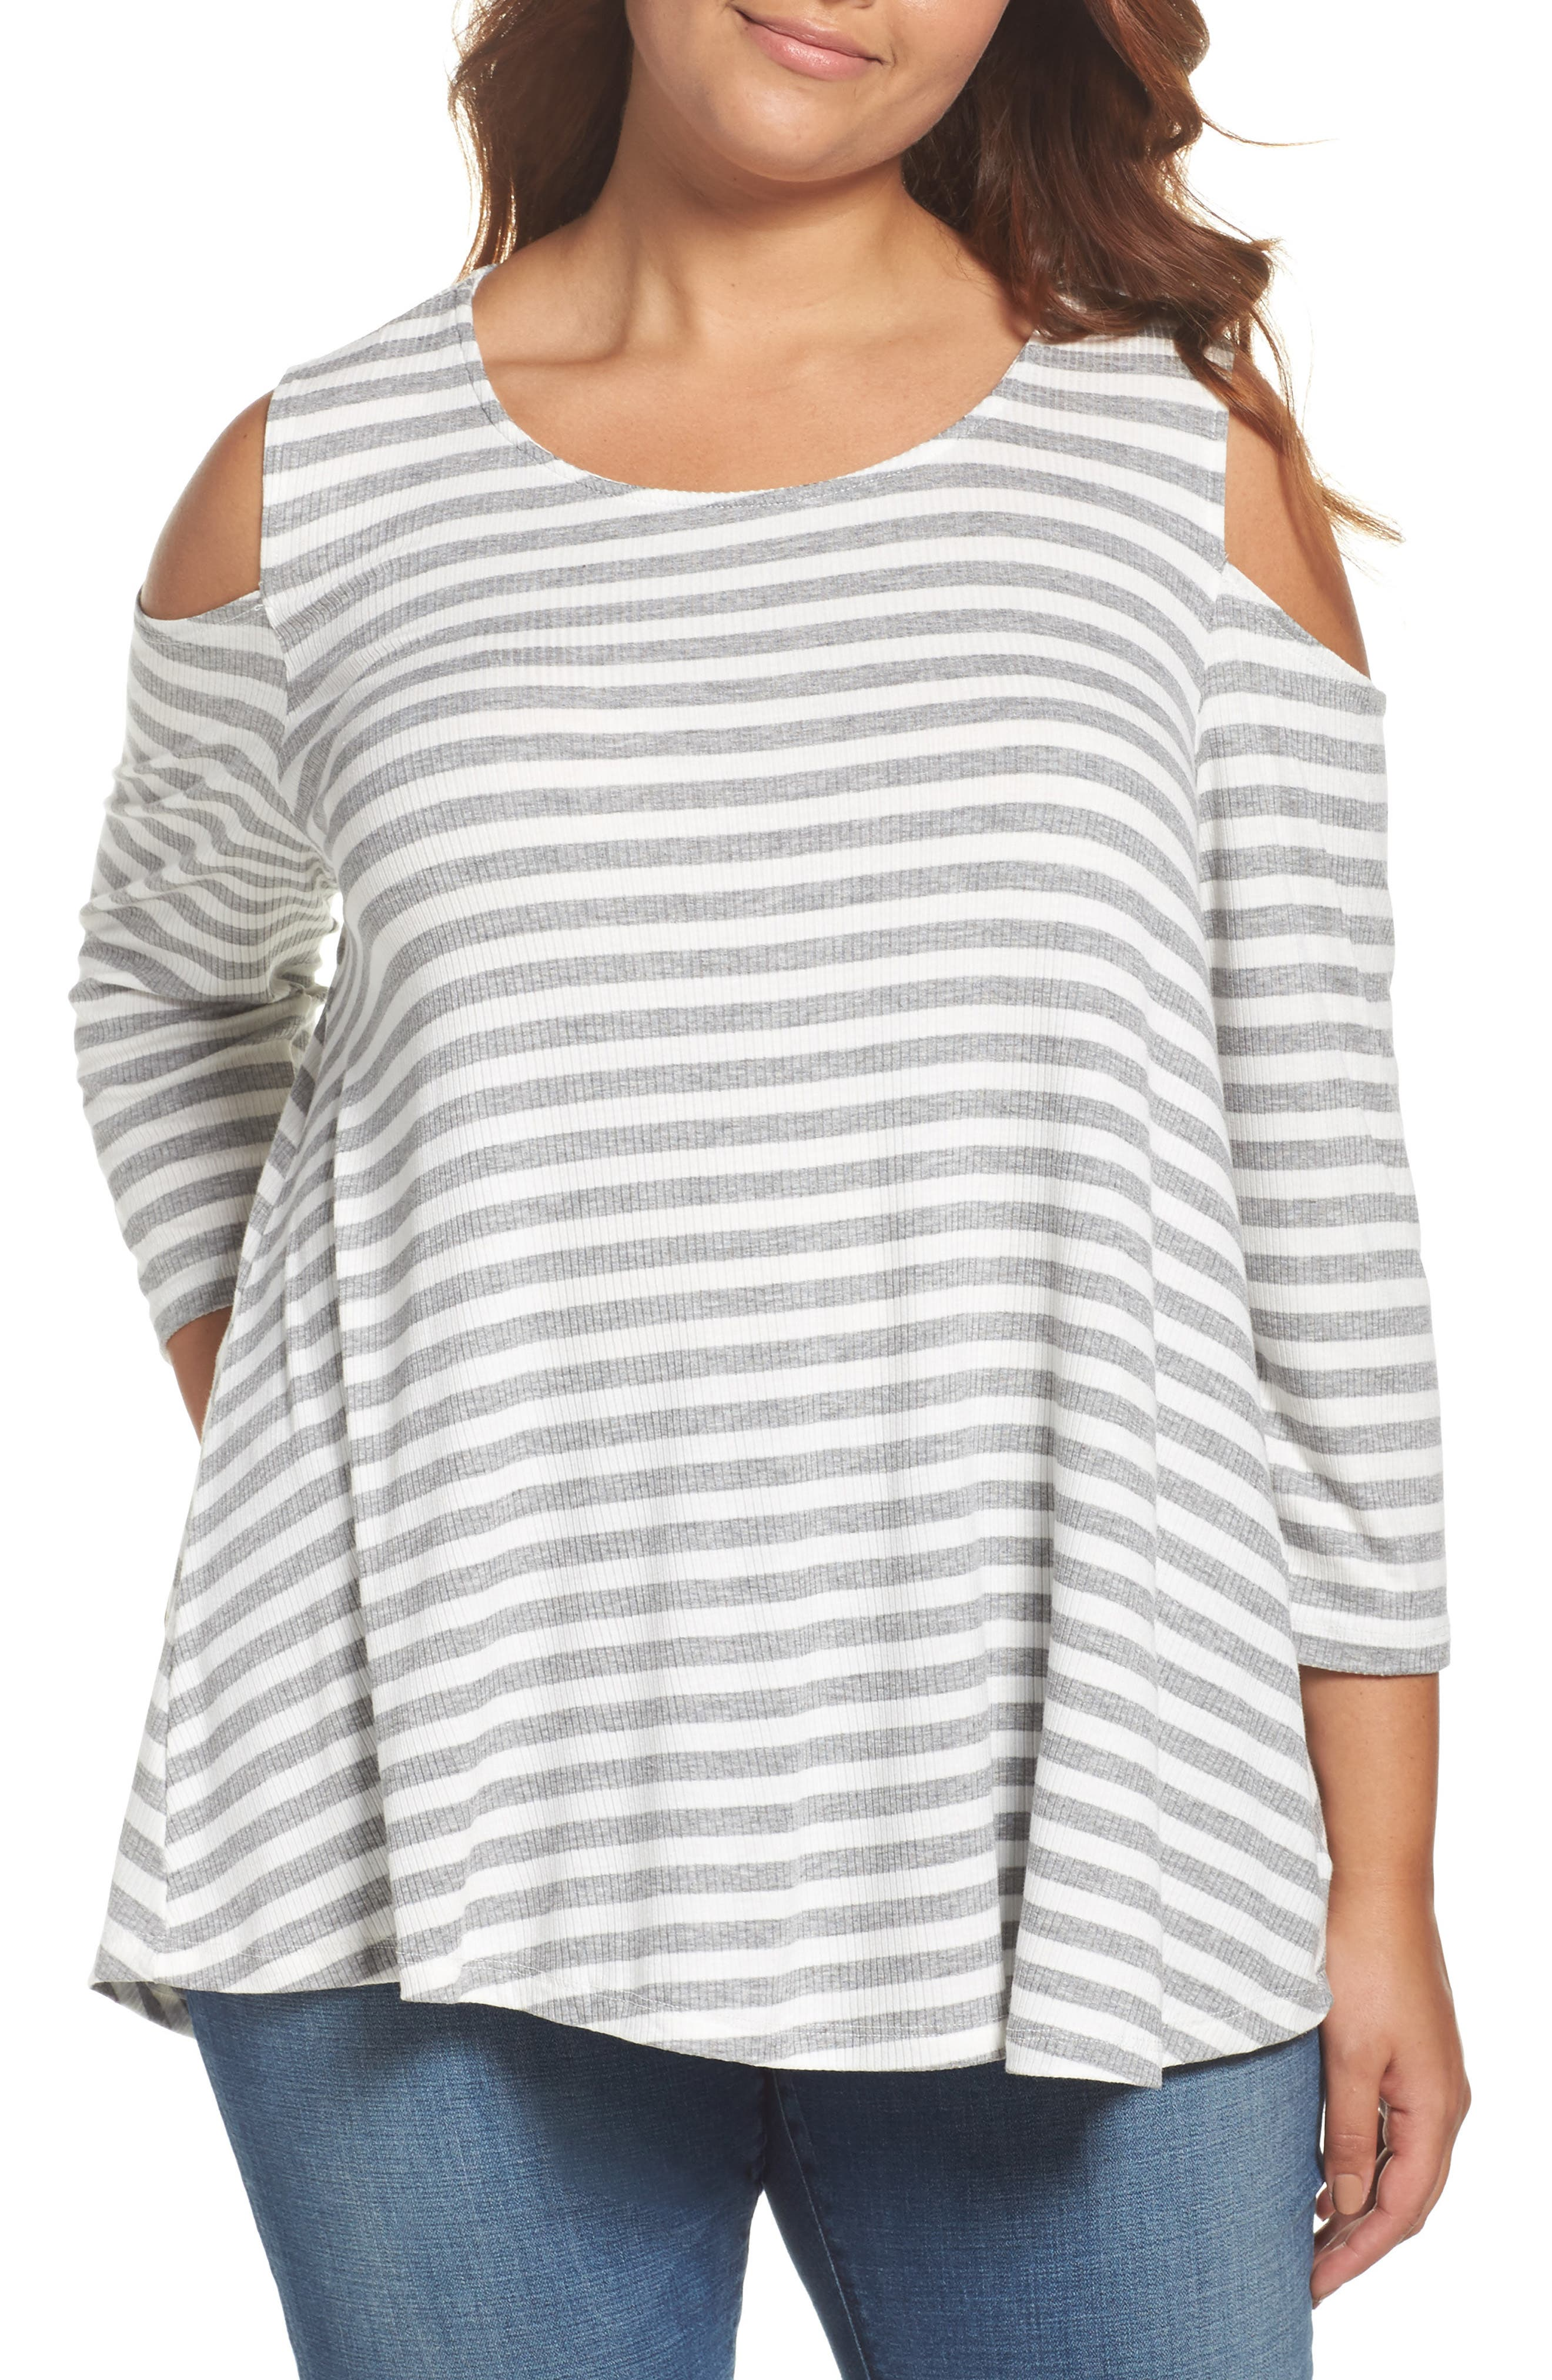 Bobeau Stripe Rib Knit Cold Shoulder Top (Plus Size)